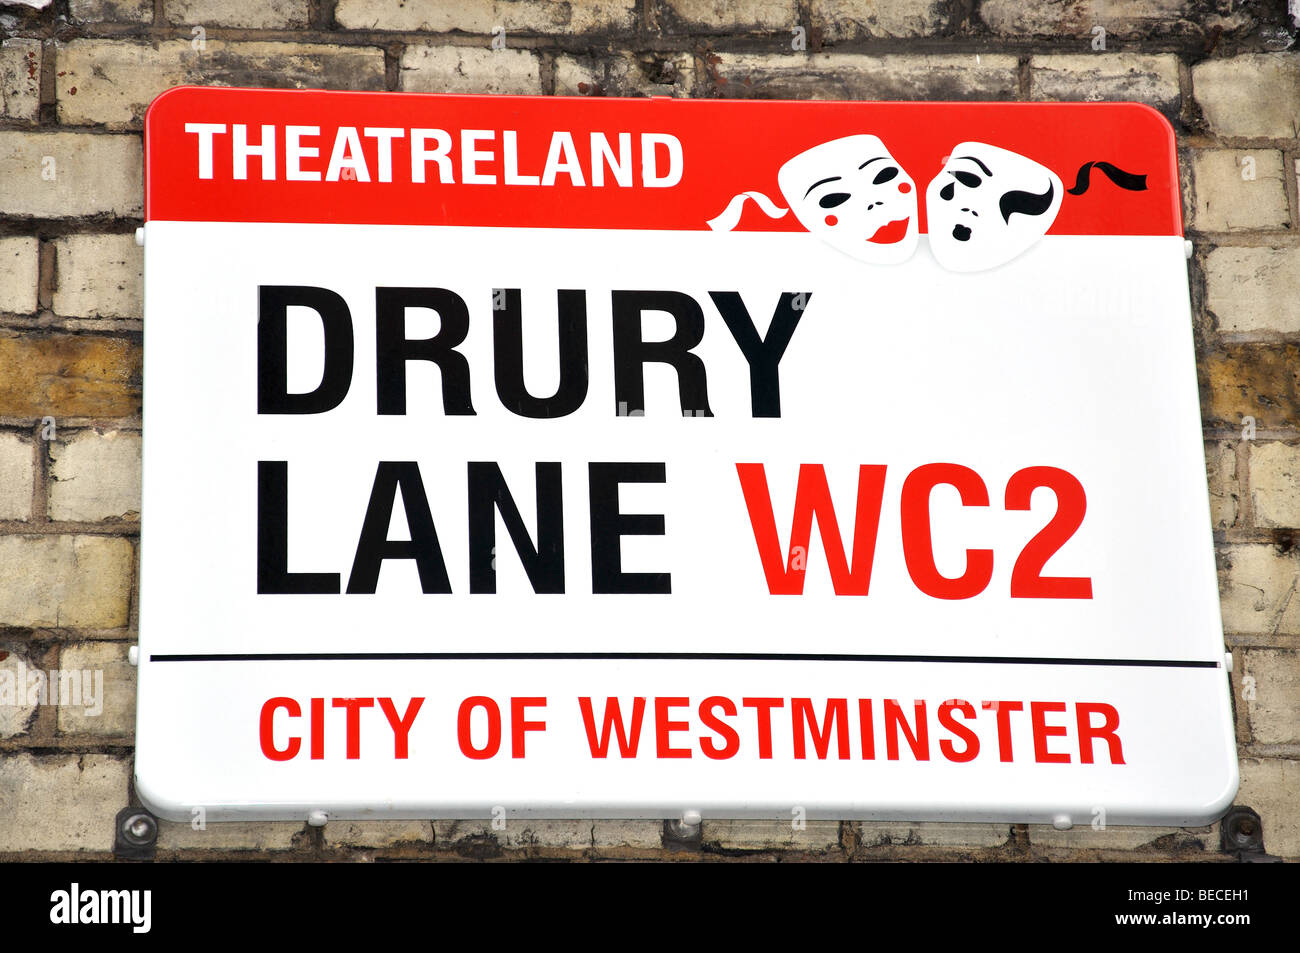 Drury Lane street sign, Covent Garden, City of Westminster, London, England, United Kingdom - Stock Image